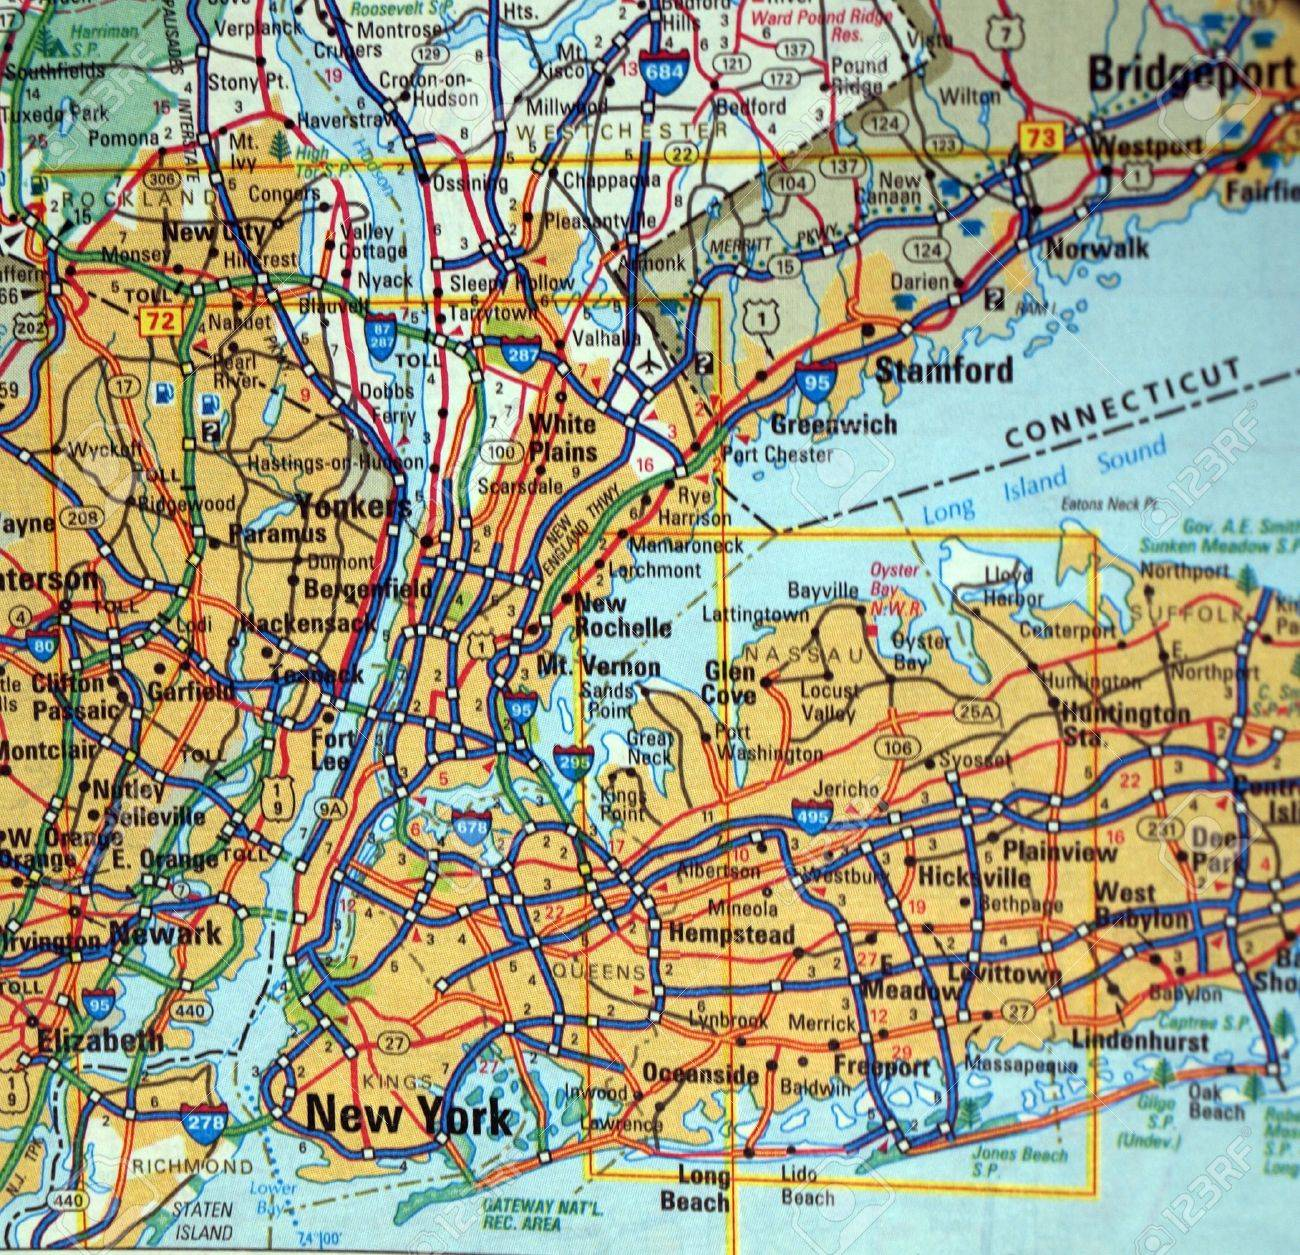 A Road Map Of The New York City, NY. Metropolitan Area Stock Photo ...